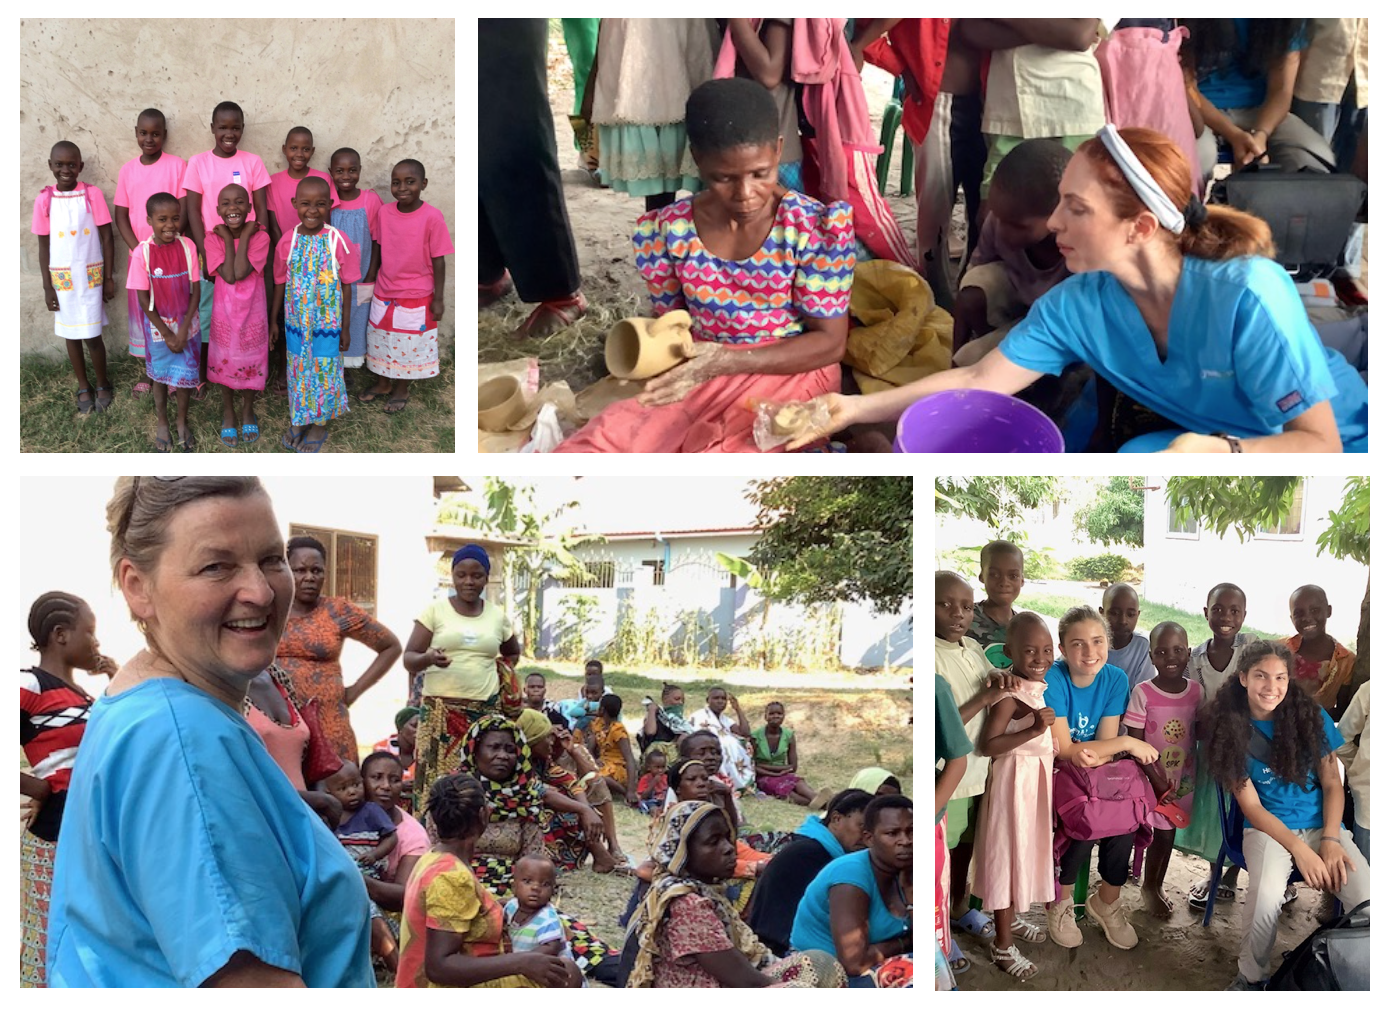 Collage of photos: 1. Group of children smiling in pink shirts, 2. Woman and nurse working on pottery, 3. group of people smiling, 4. group of children smiling.